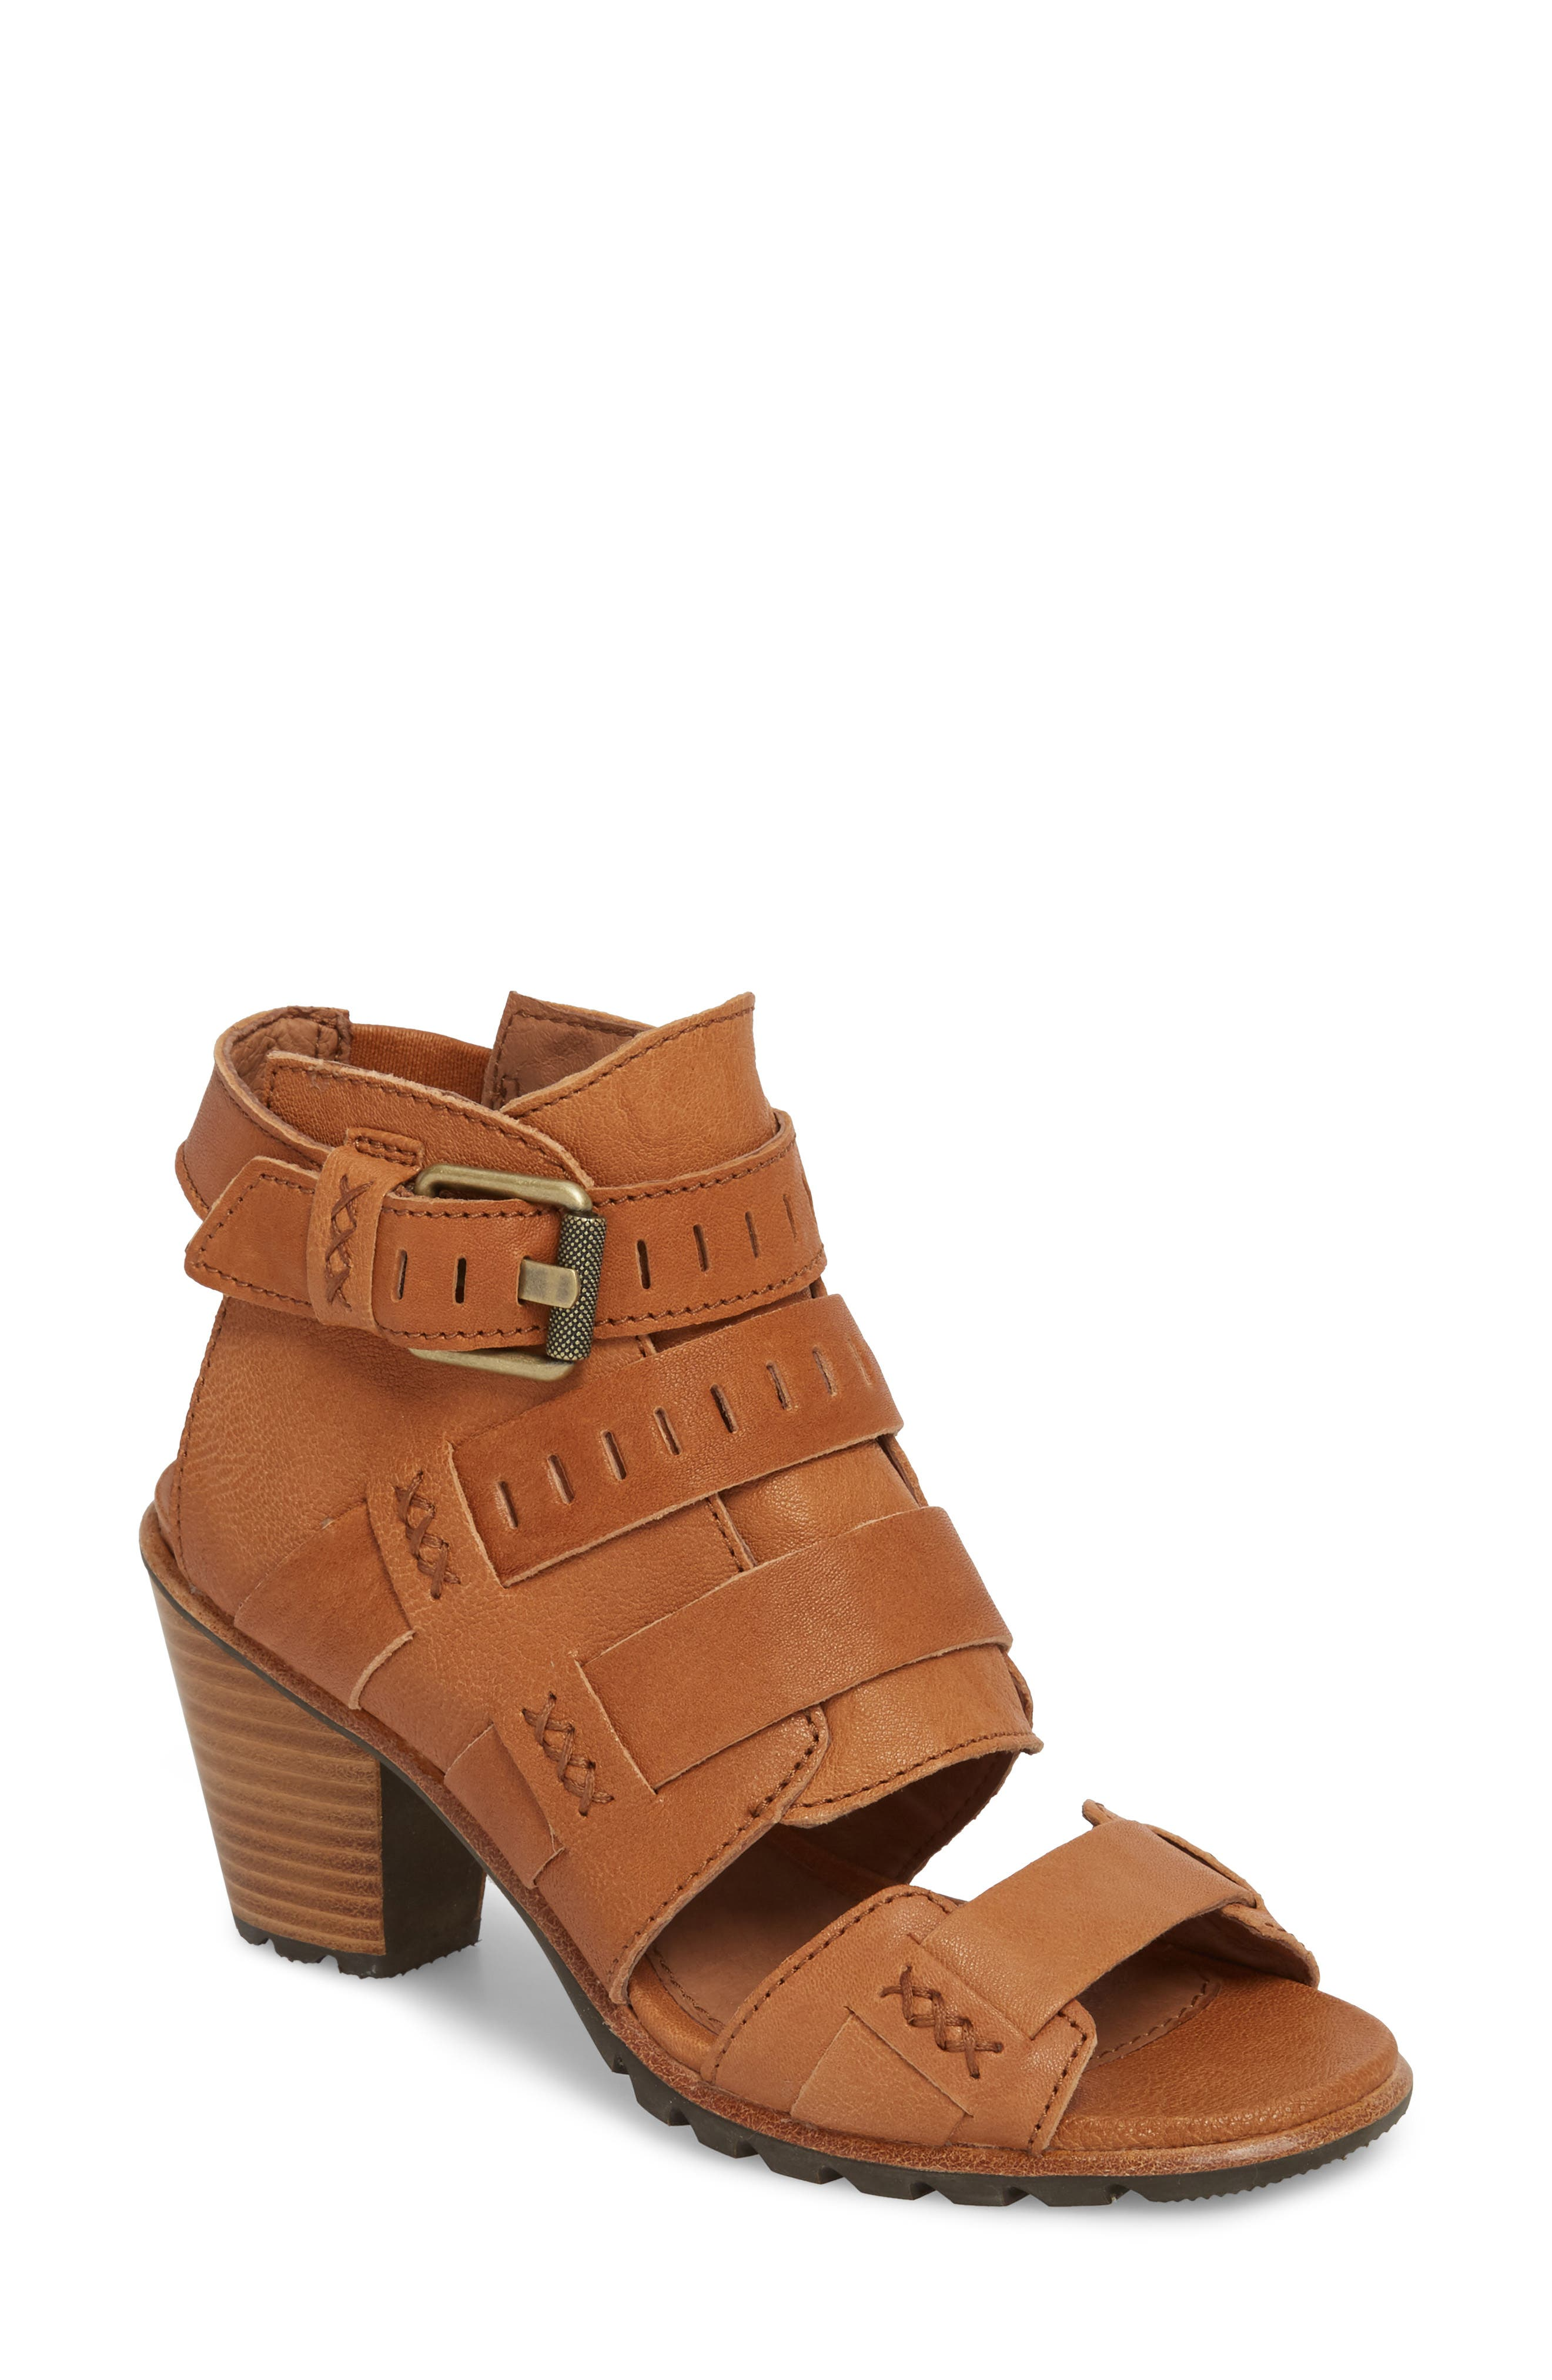 Nadia Buckle Bootie,                         Main,                         color, Camel Brown